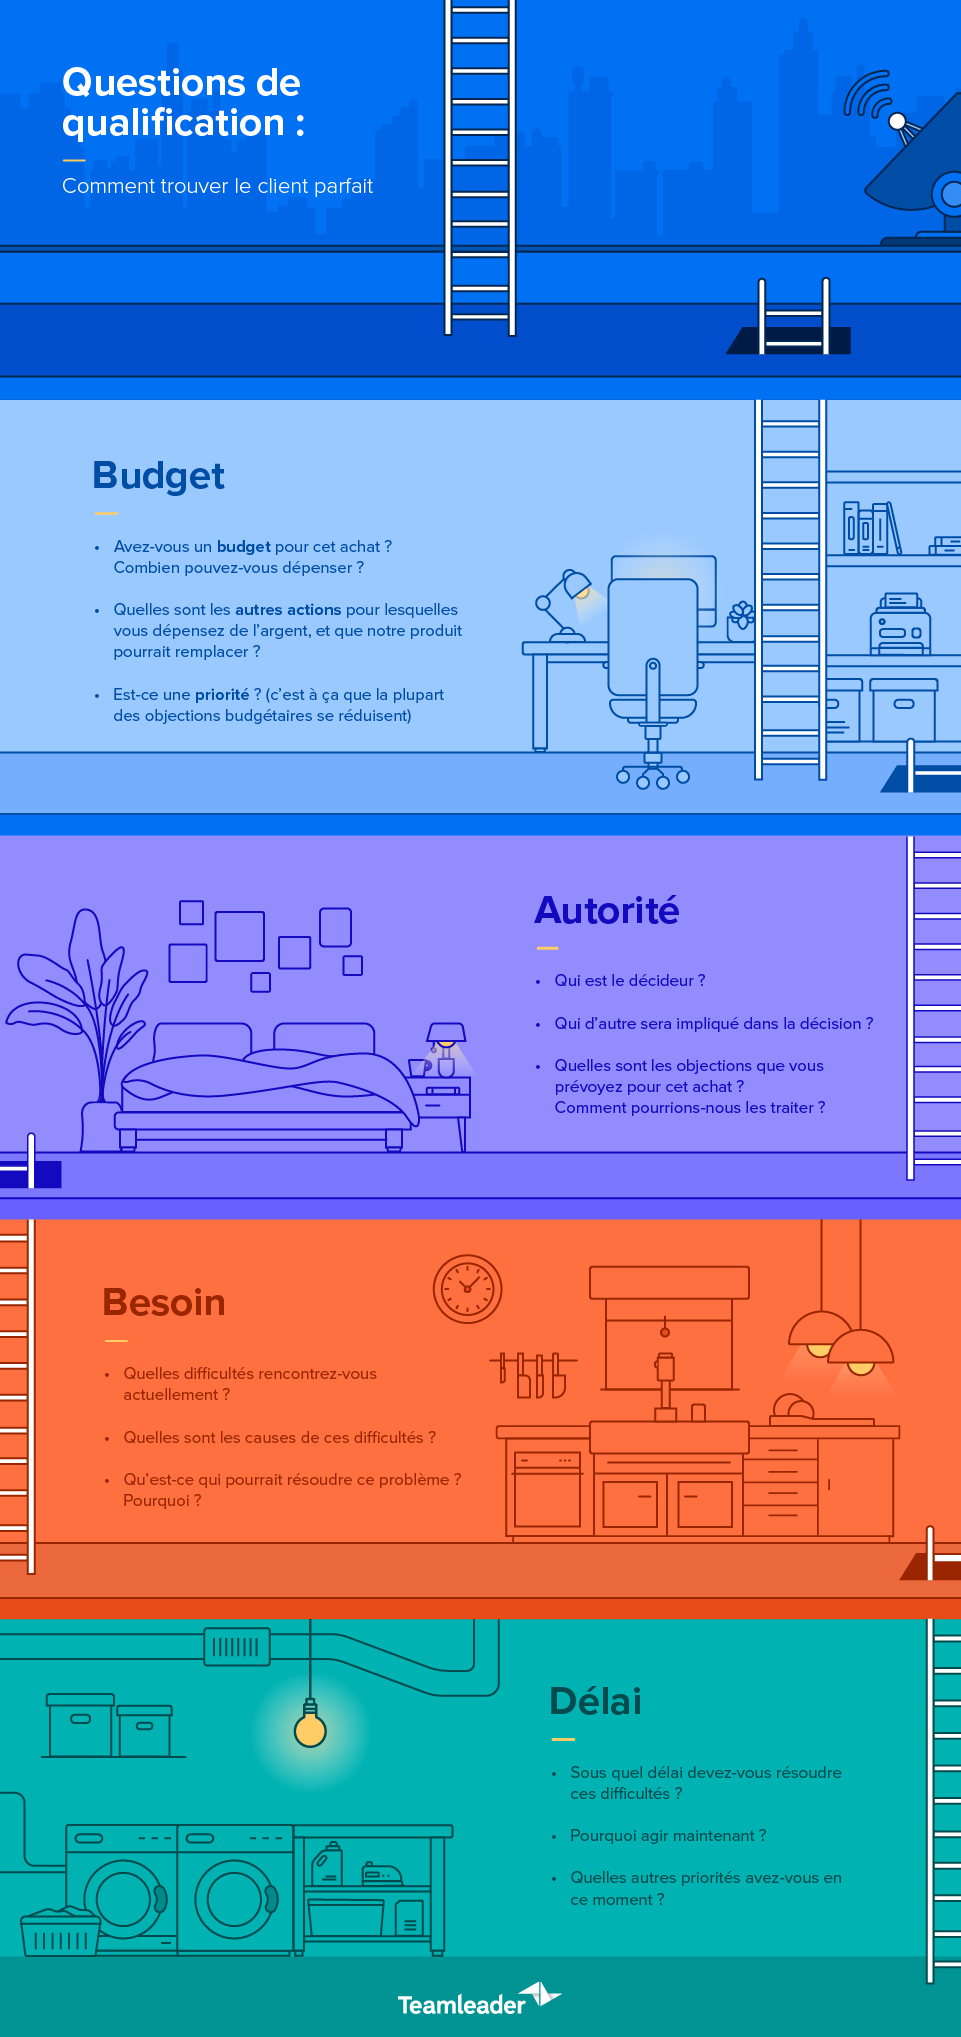 Blog3_QualifyLeads_Infographic_FR.png